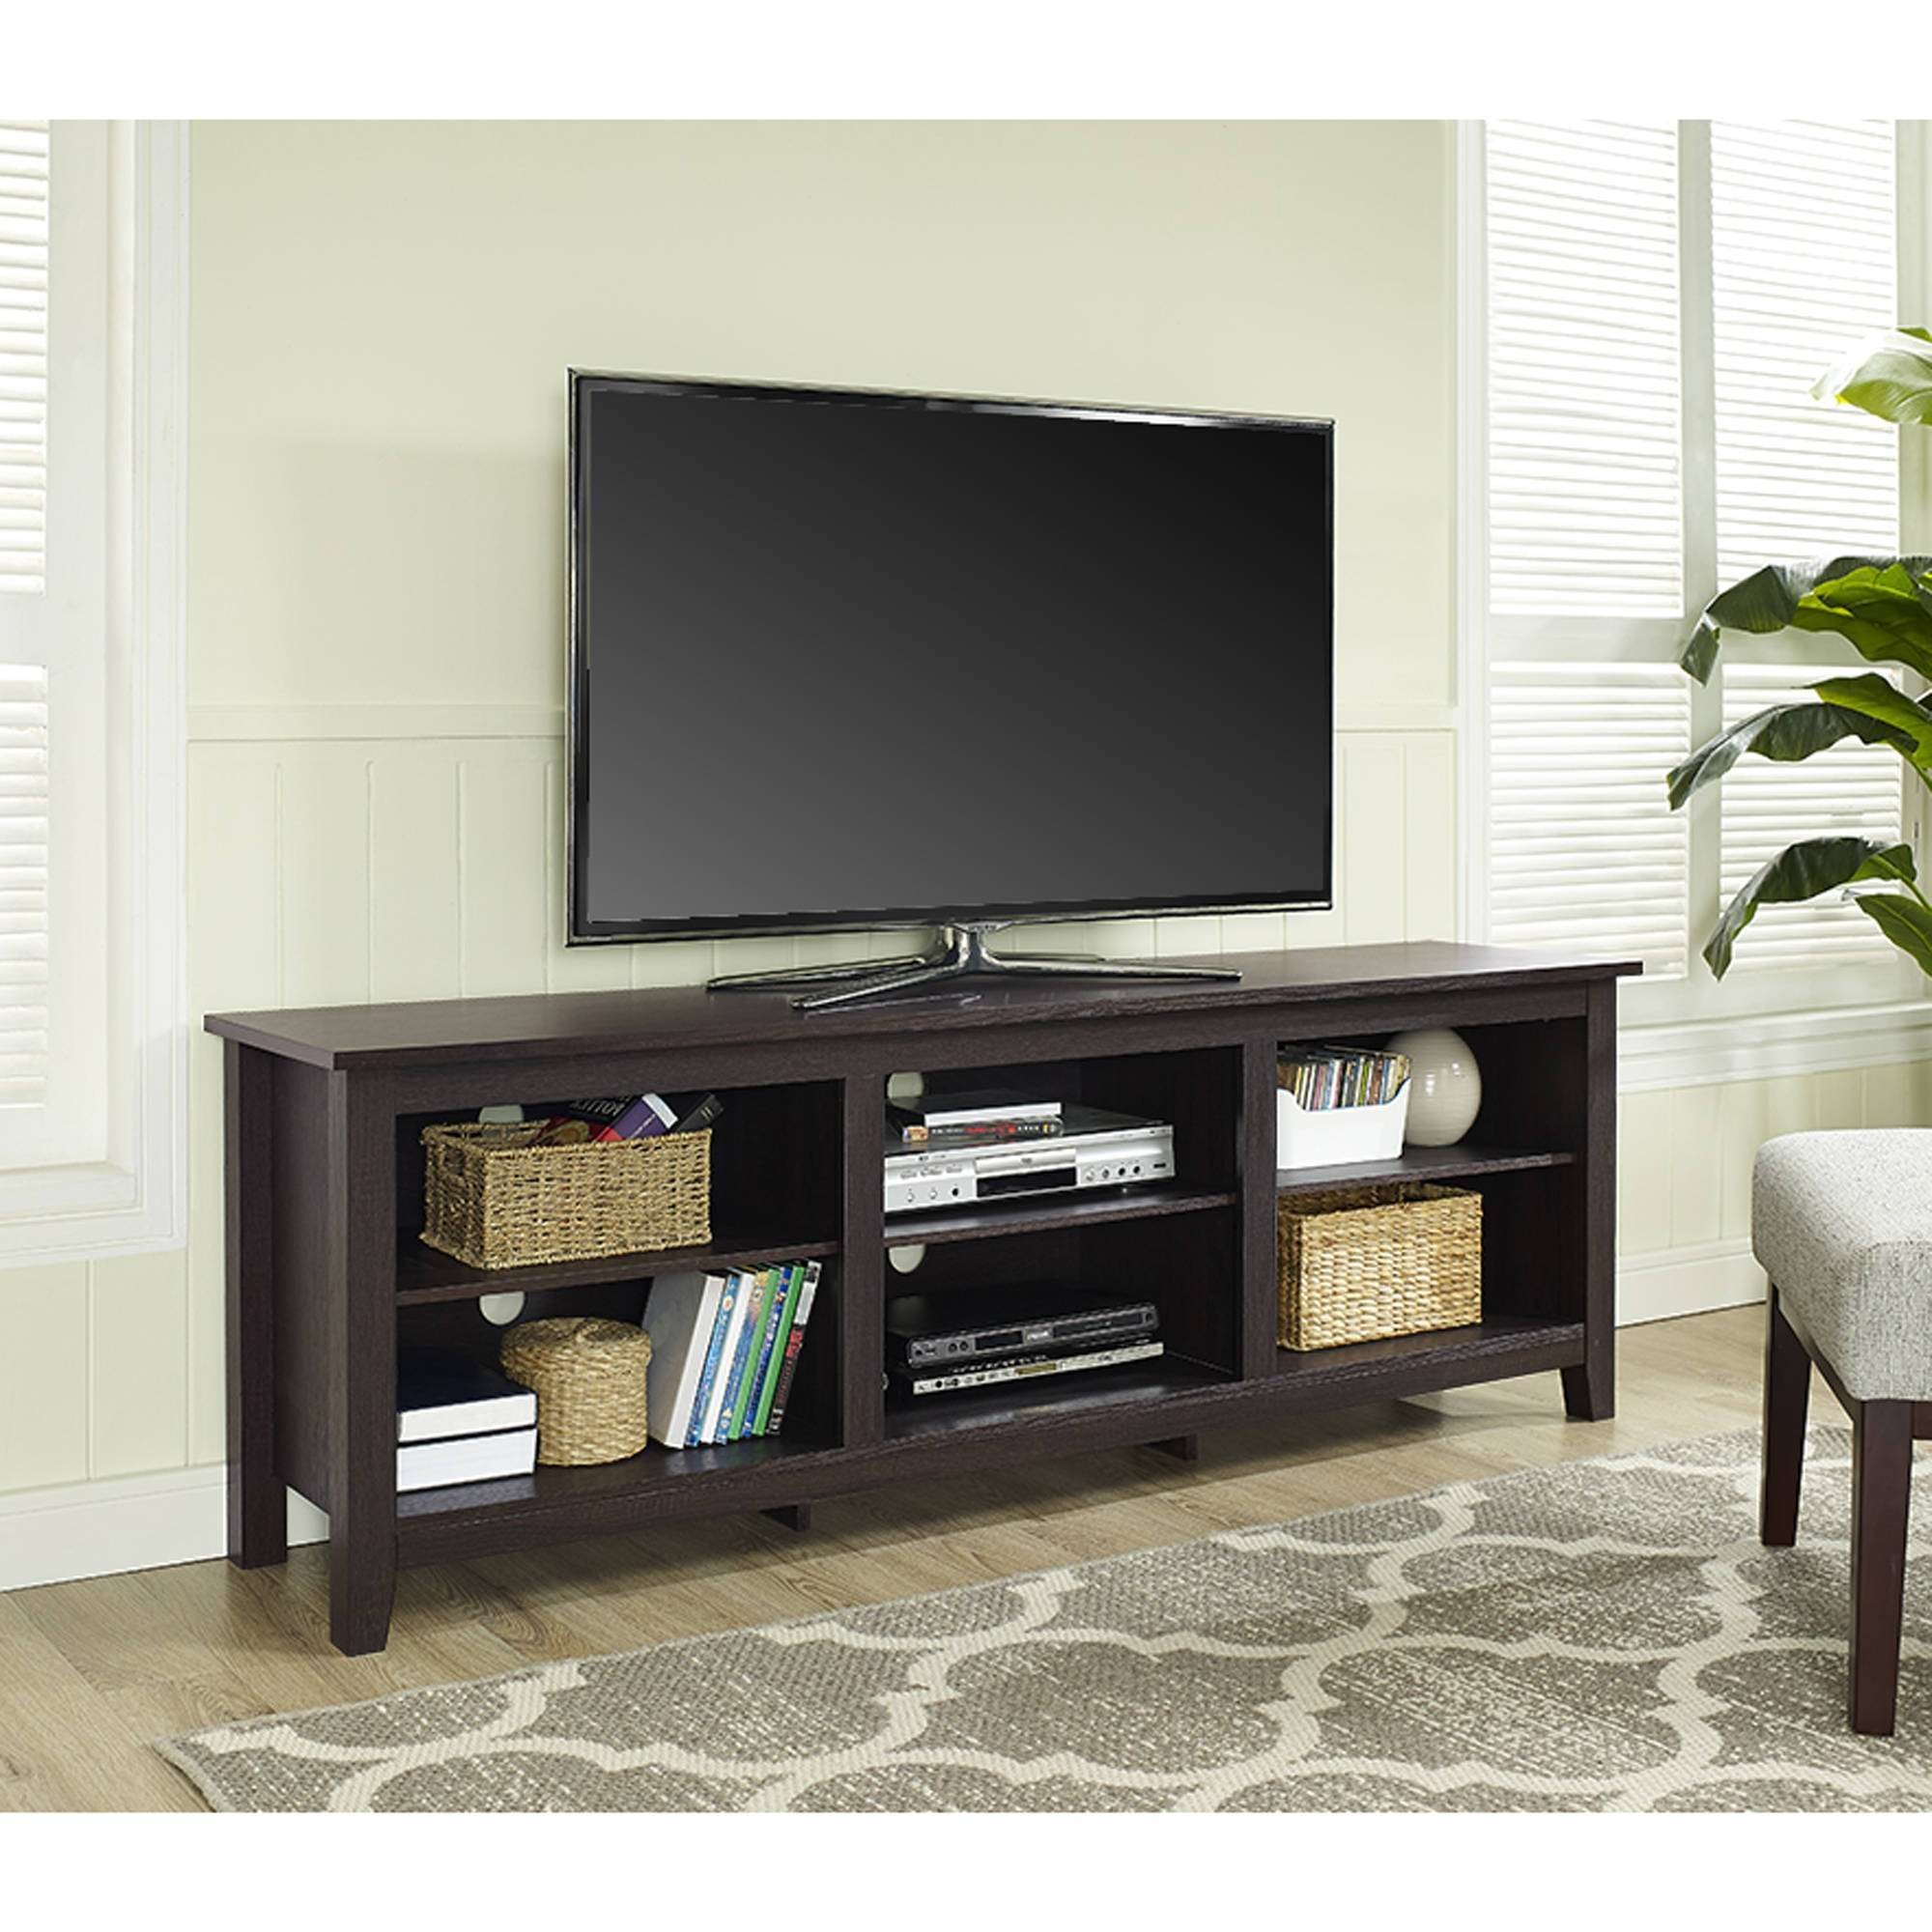 "Ameriwood Home Clark Tv Stand For Tvs Up To 70"", Espresso For Tv Stands For 70 Inch Tvs (View 2 of 20)"